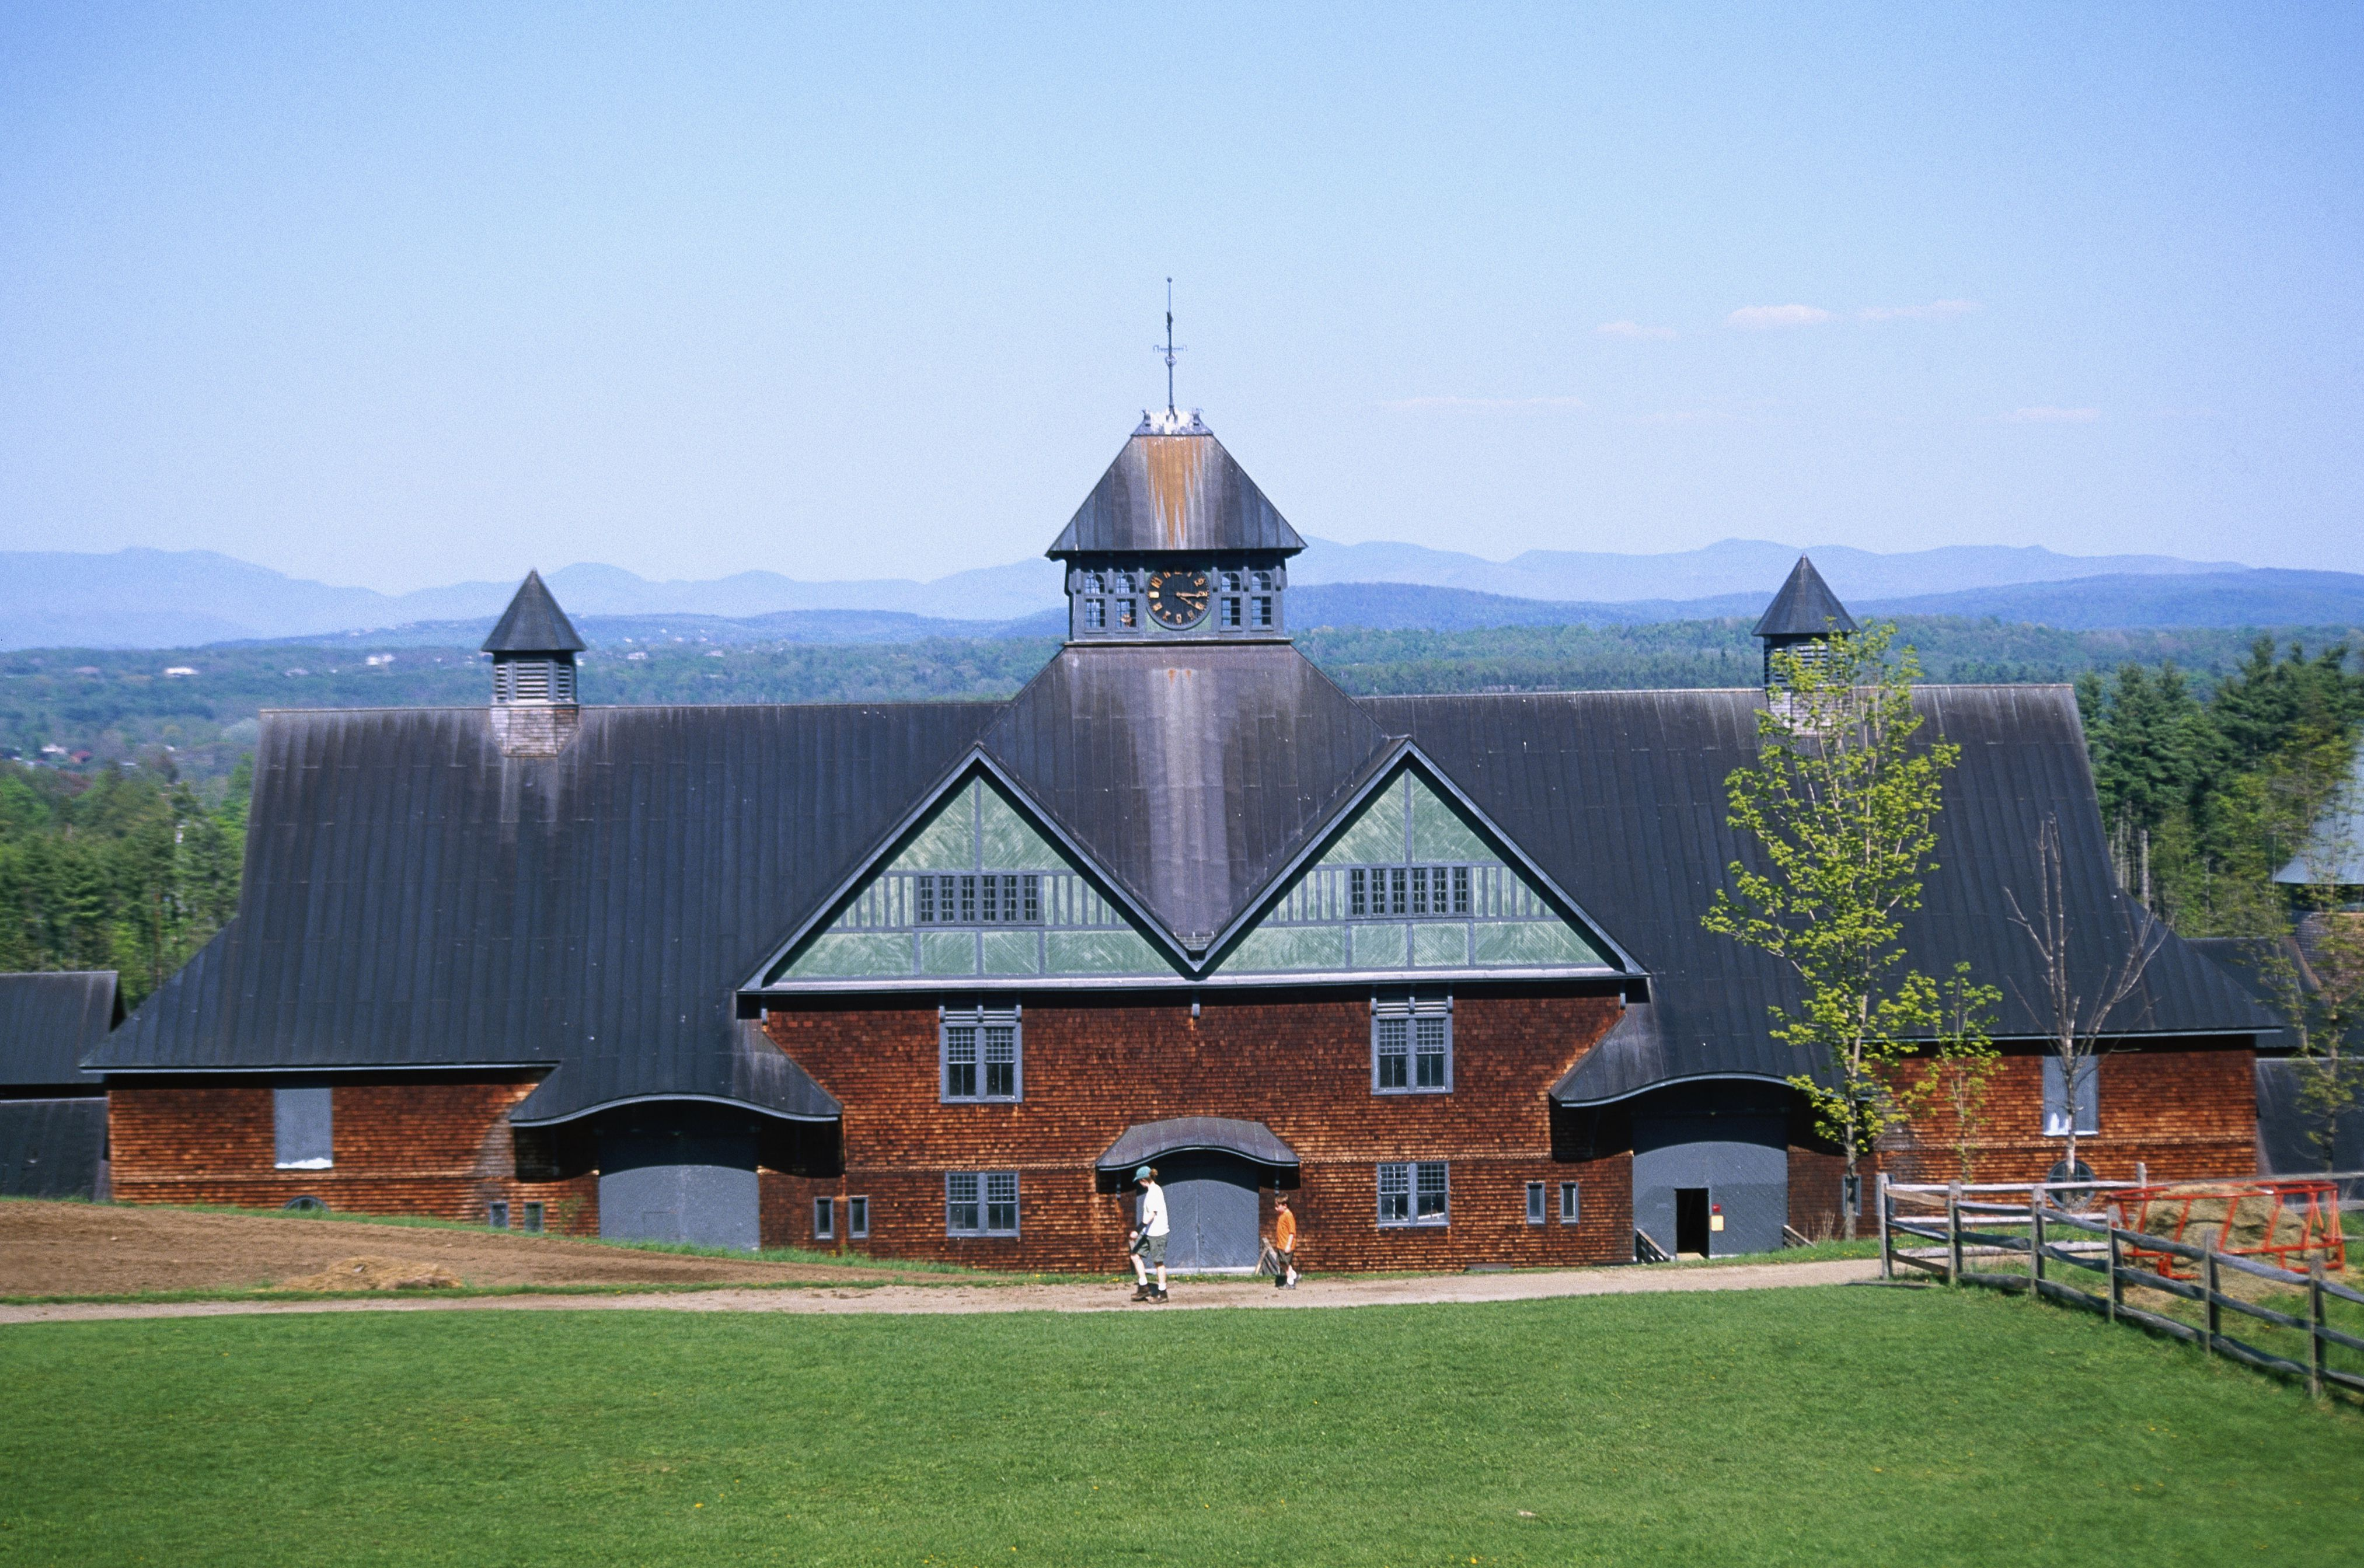 Designed by Olmstead, Shelburne Farms